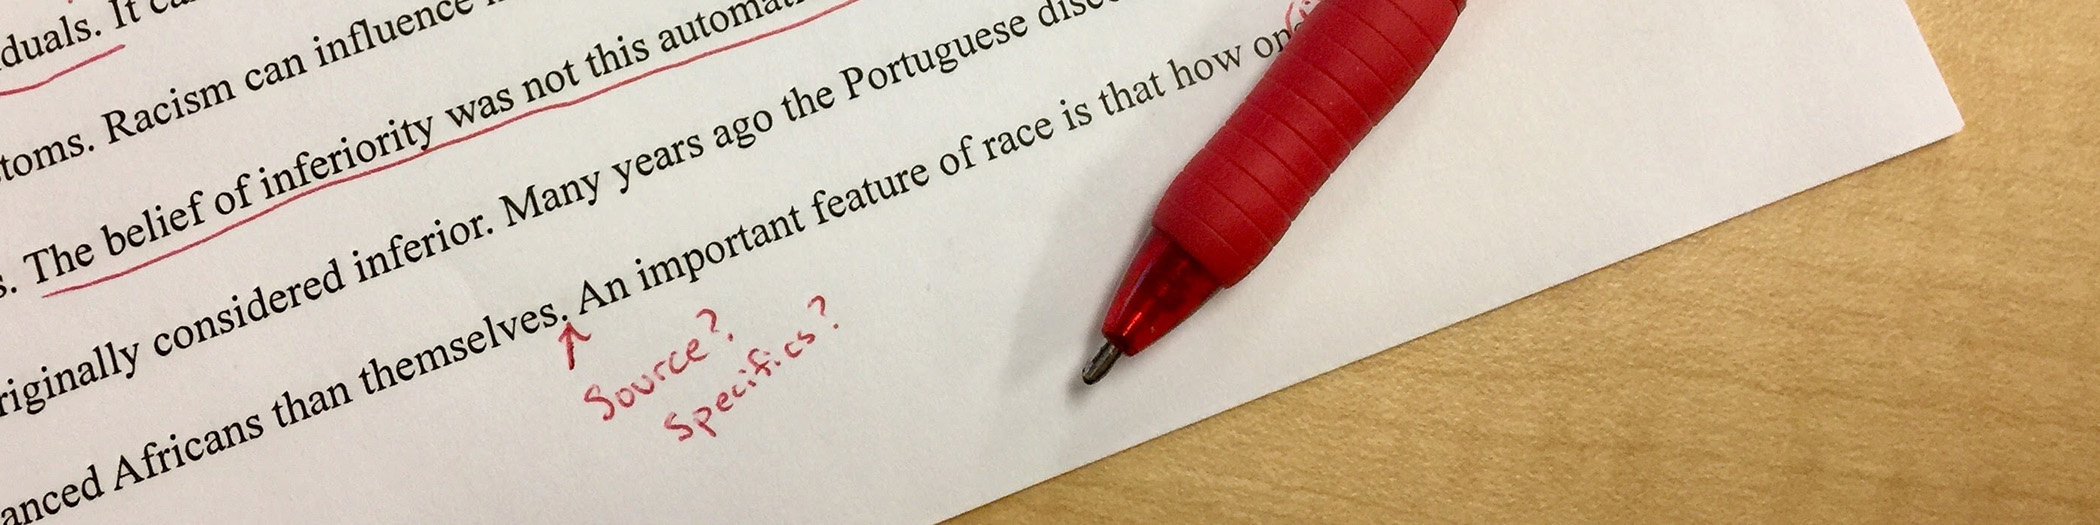 Red pen editing